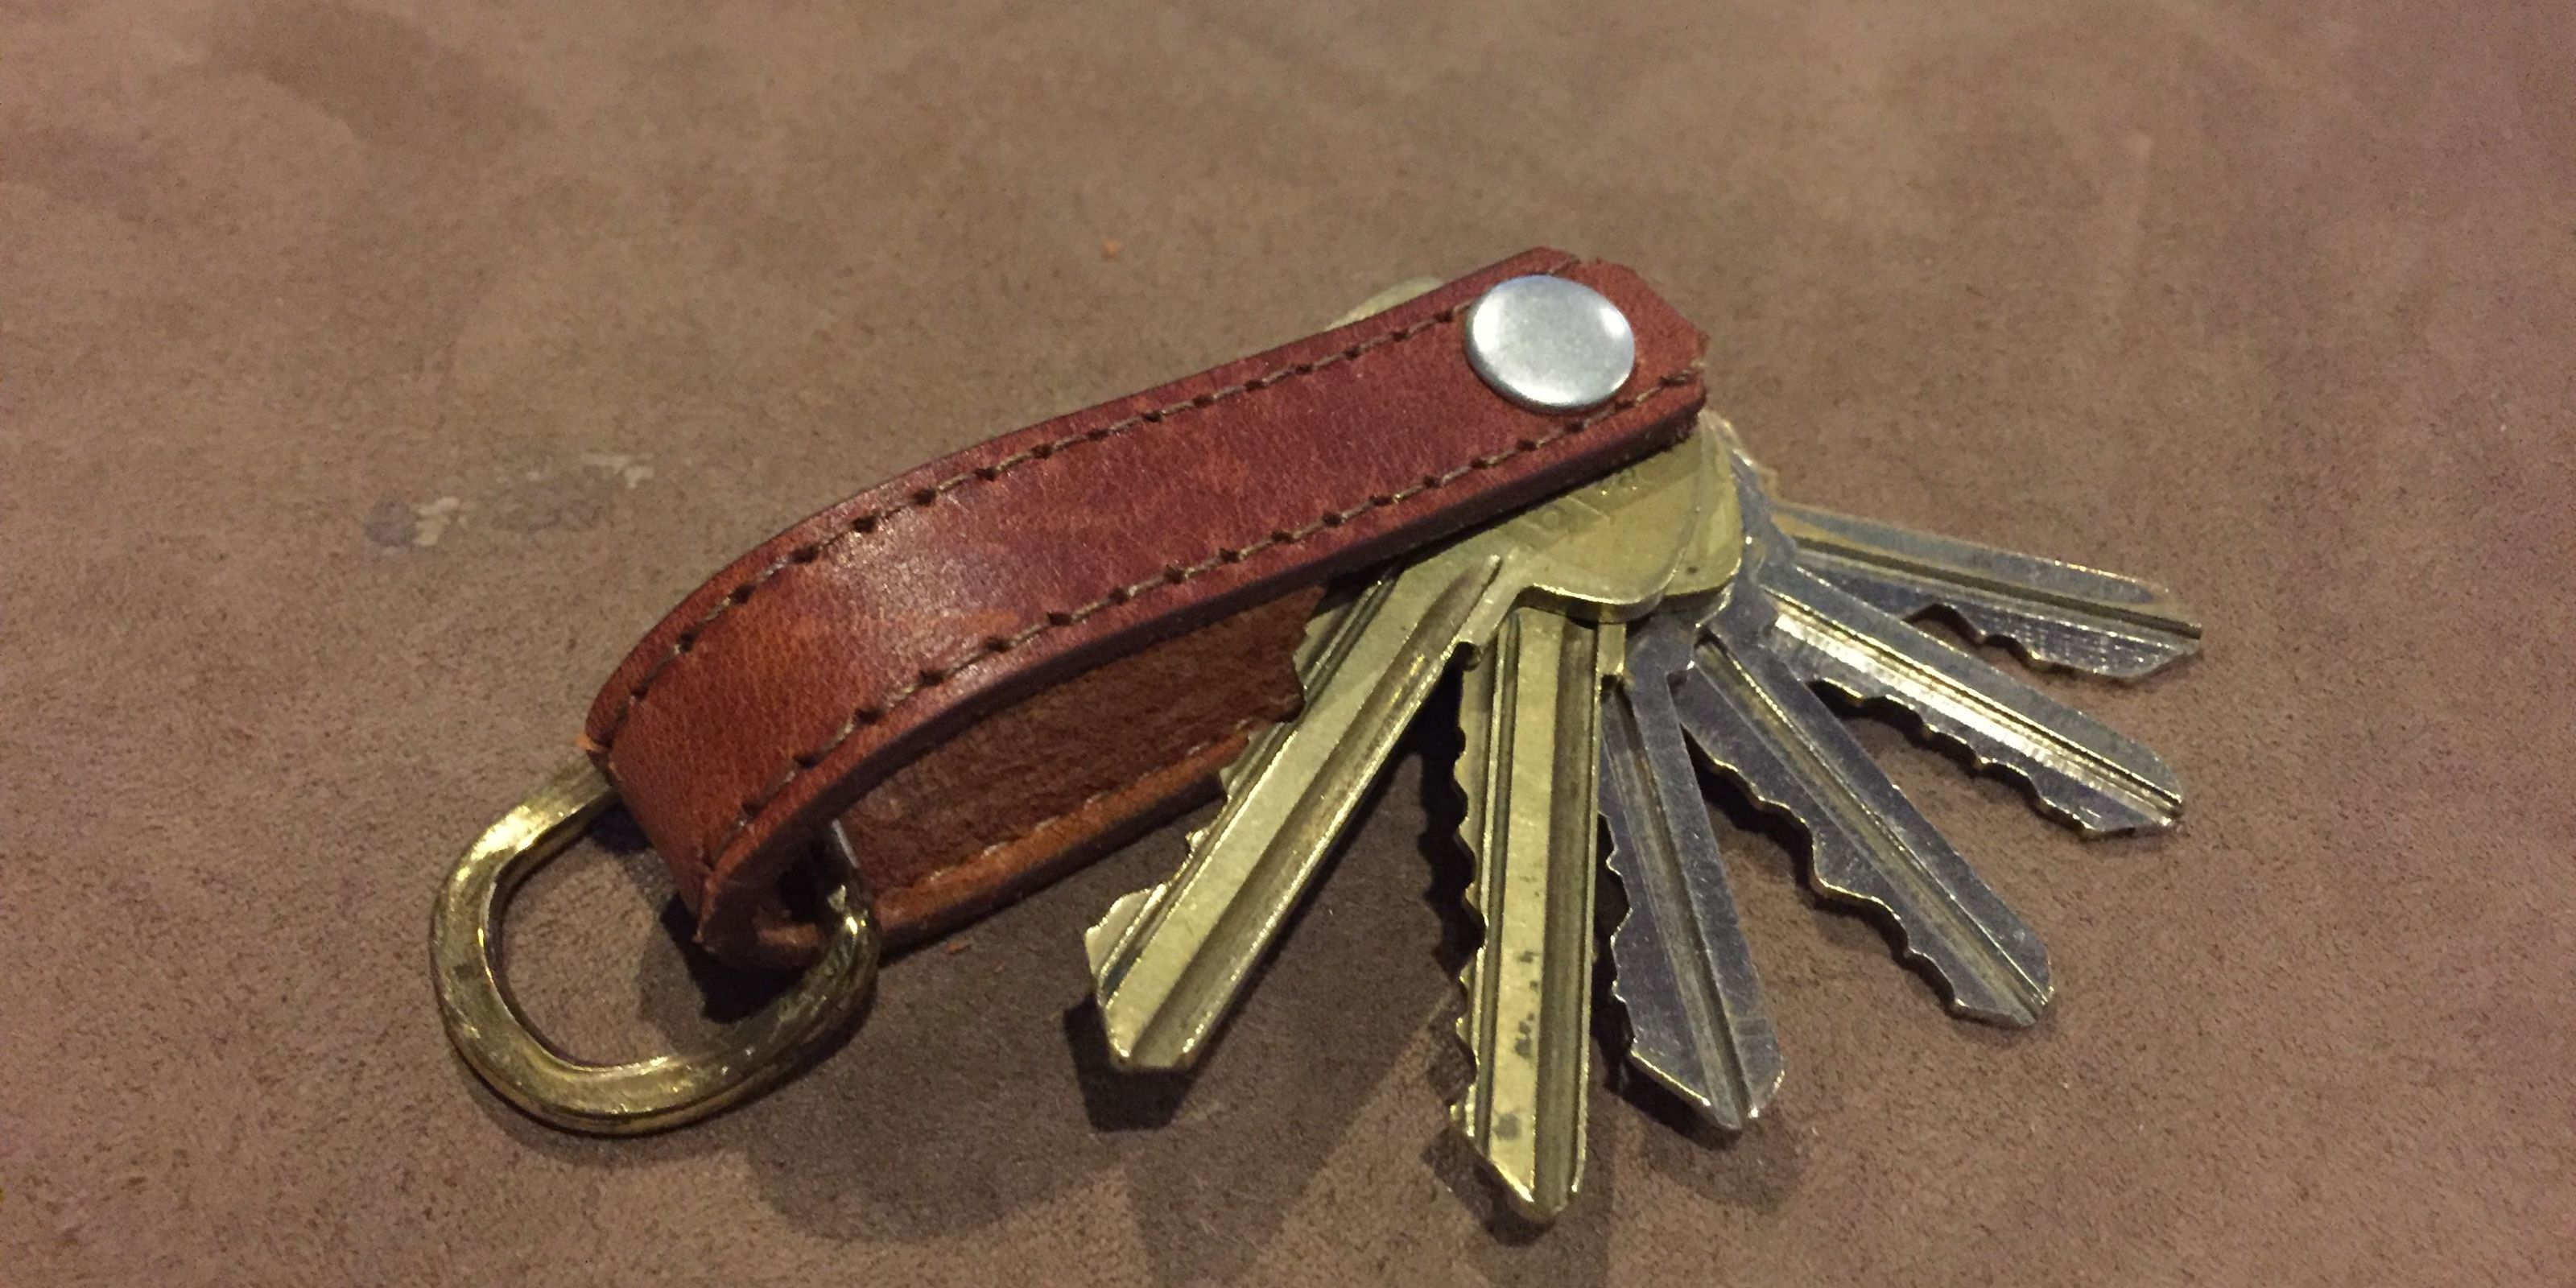 How To Make a Clever Leather Key-Holder for Just a Few Bucks